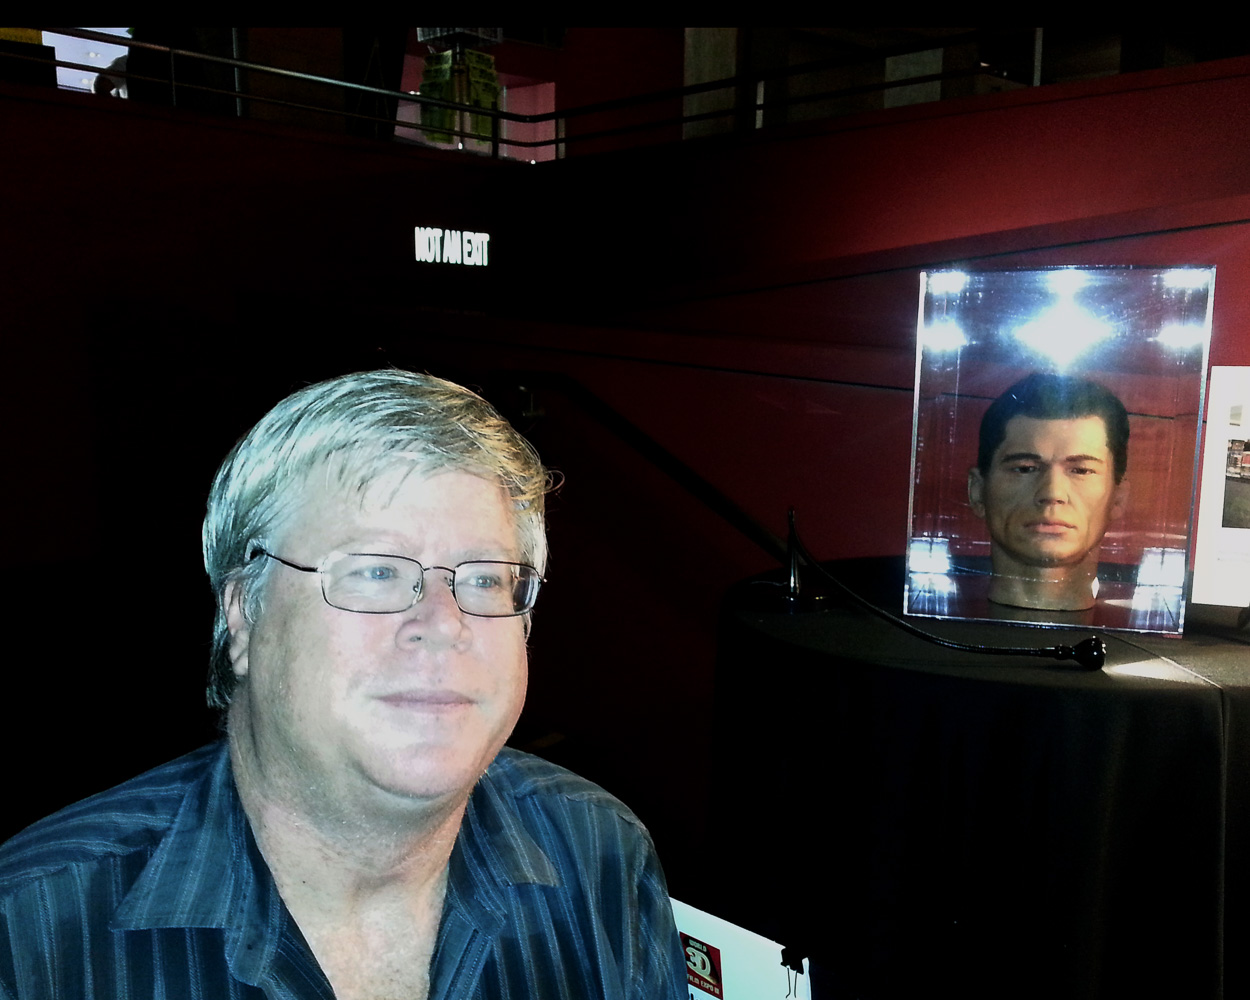 Attending a 3D Film festival in Hollywood at Grauman's Egyptian Theatre with prop from the 3D moview House of Wax